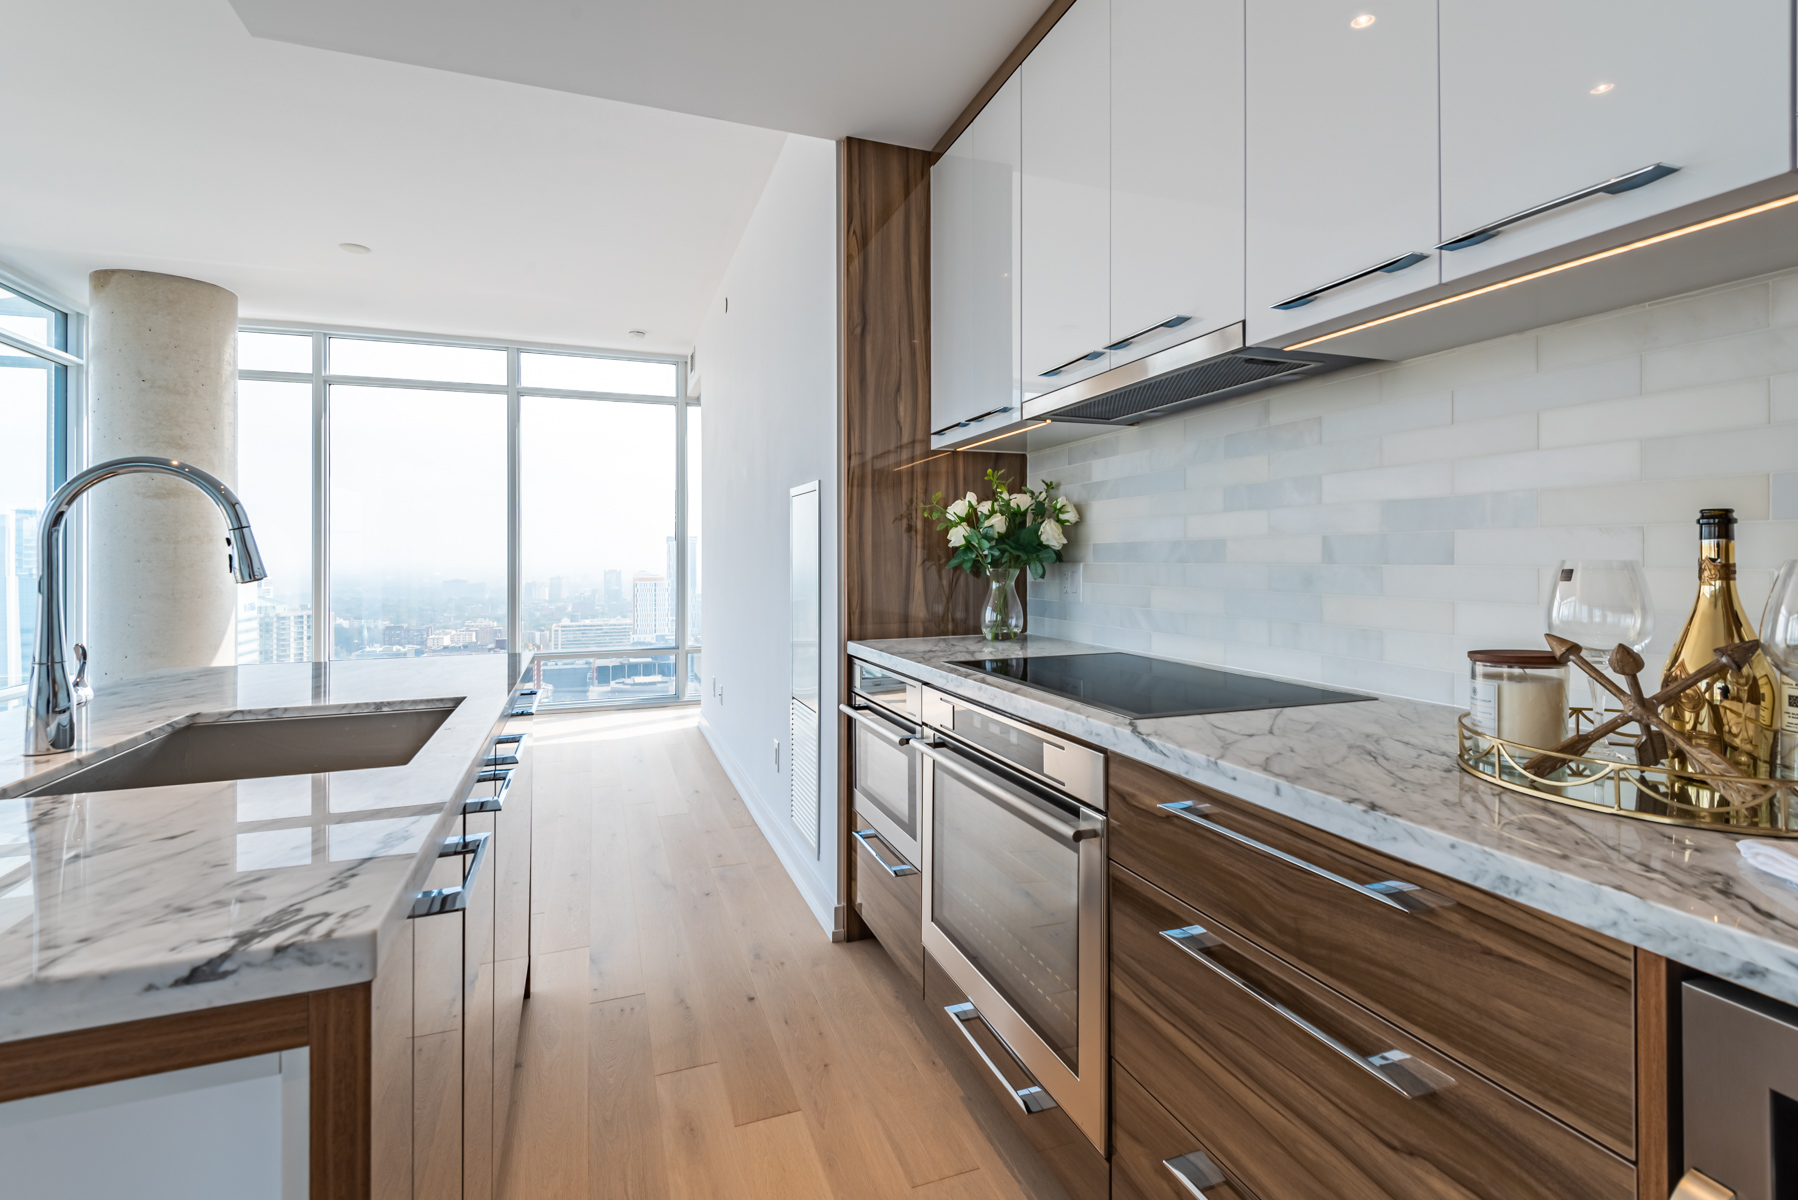 Condo kitchen with white marble counters, shiny cabinets and a tiled back-splash.